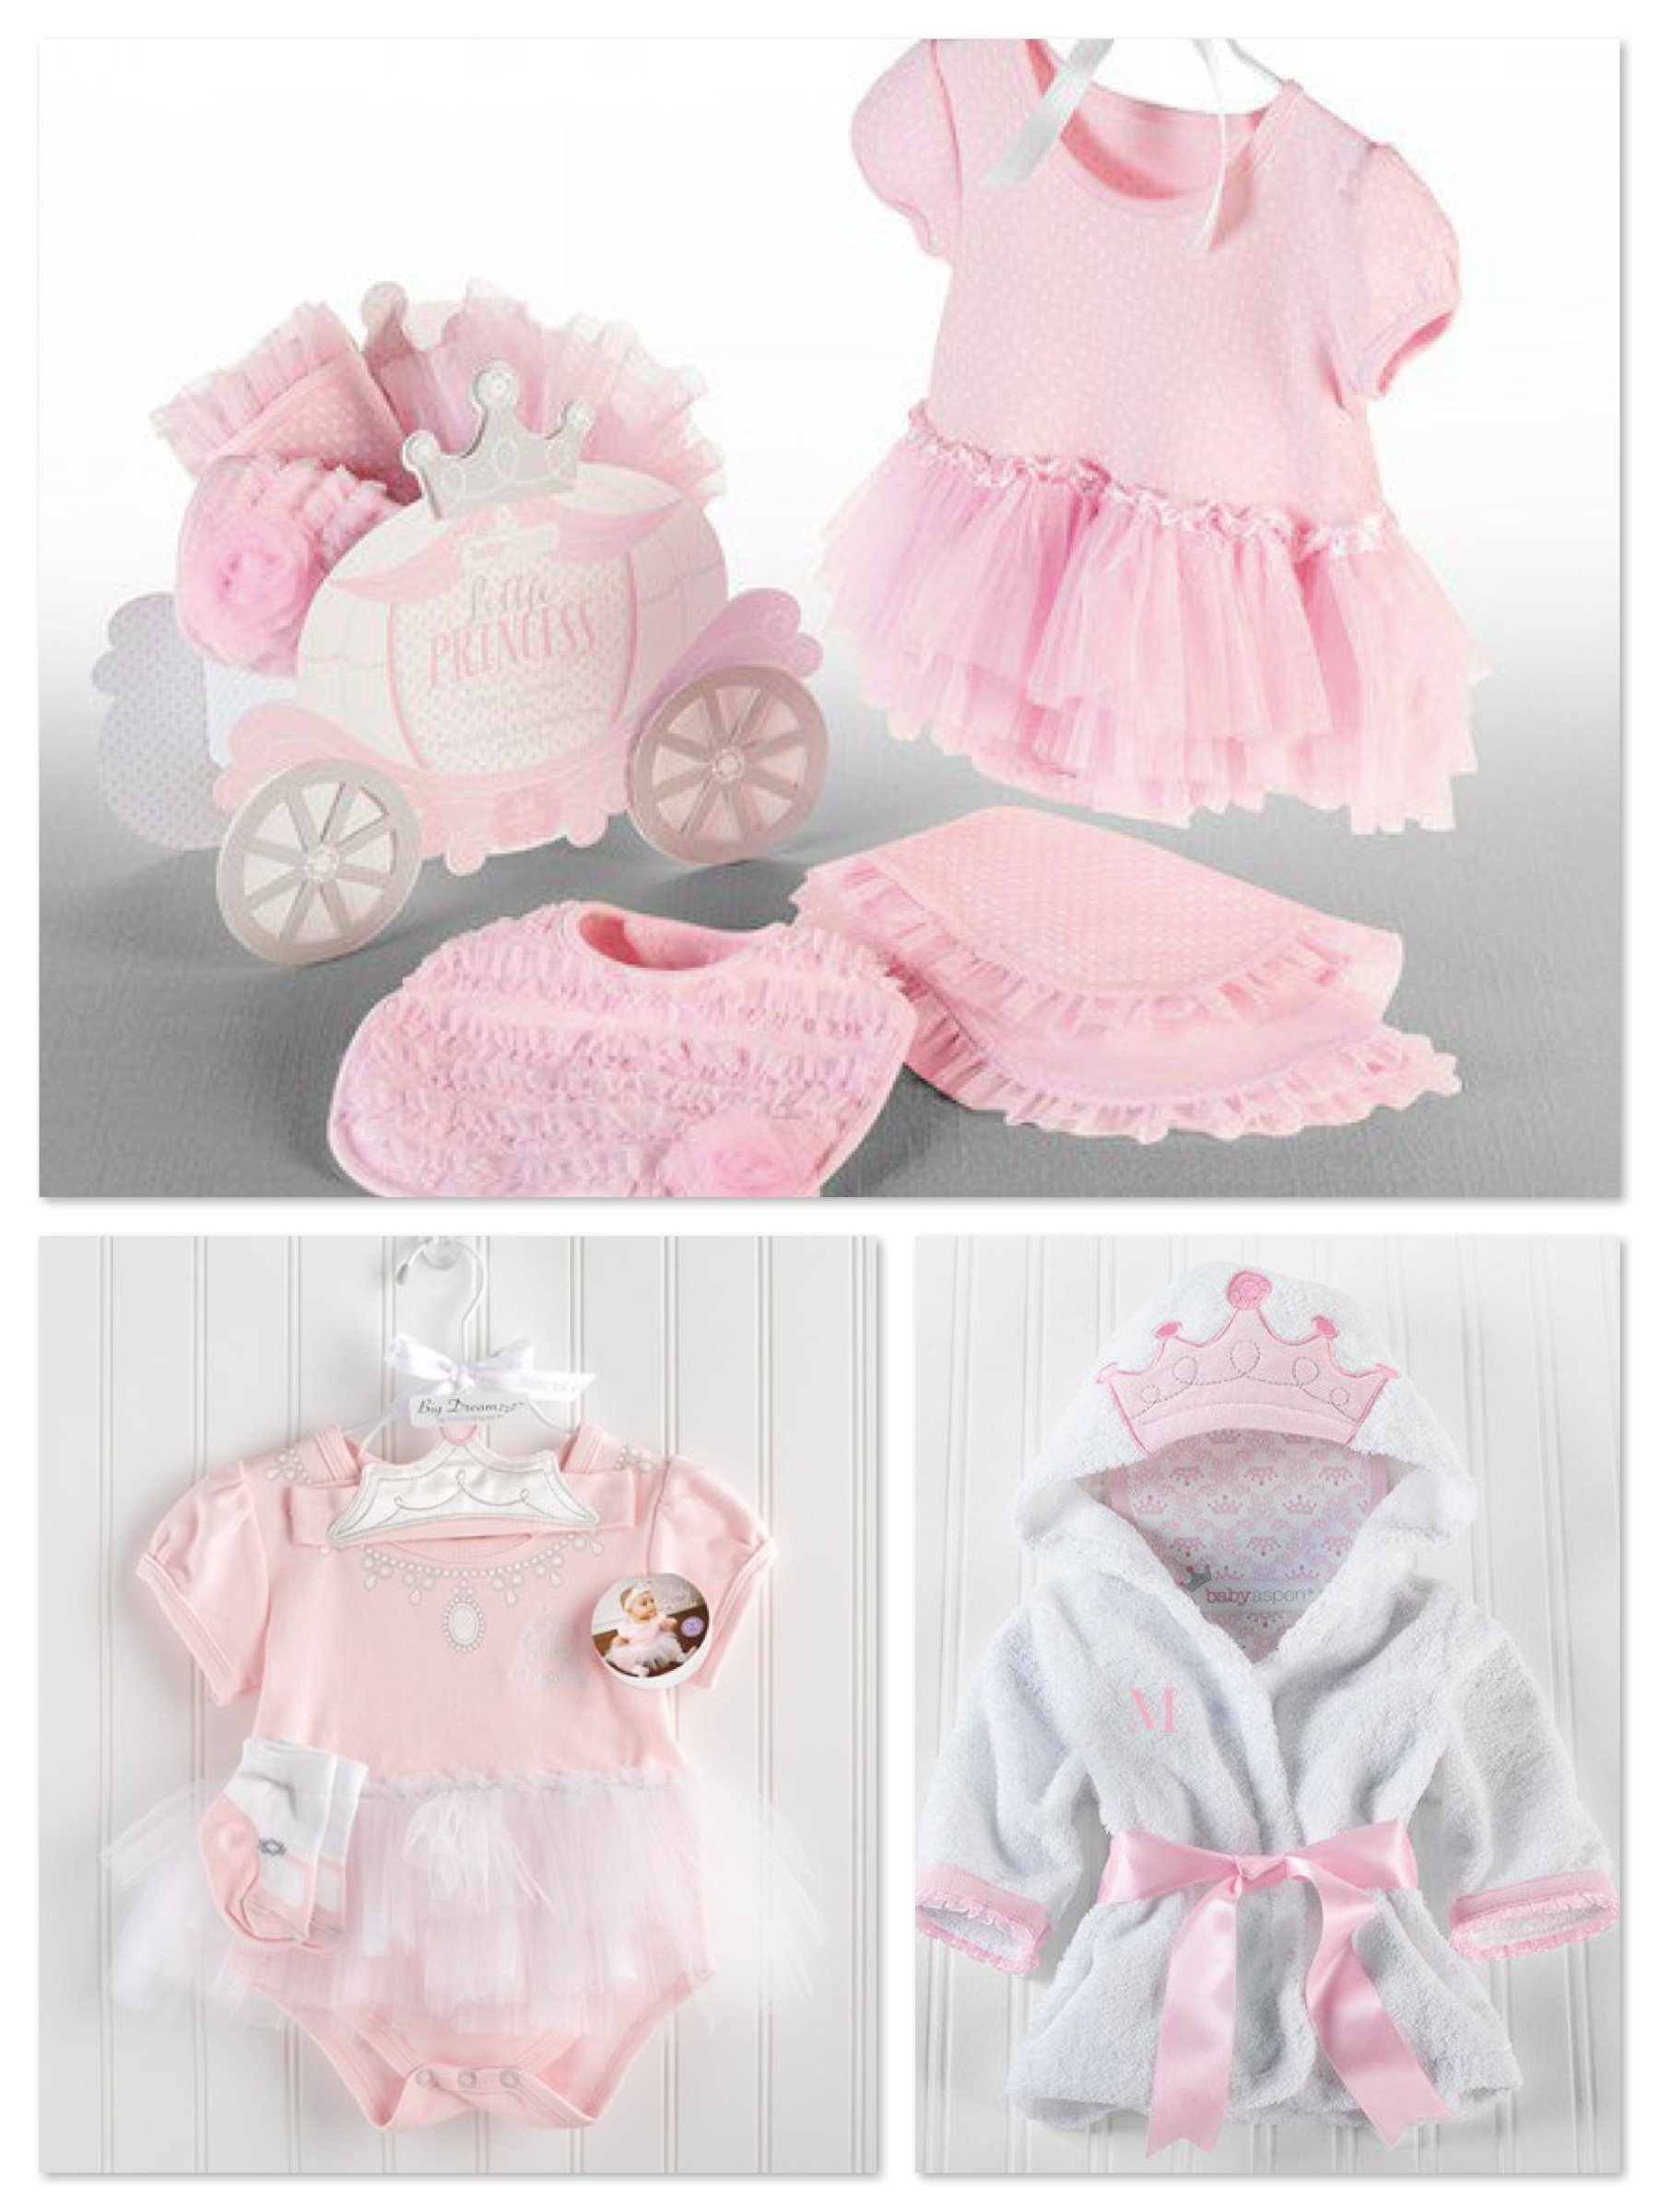 Little Princess Baby Shower Gifts, Royal Baby Shower Gifts